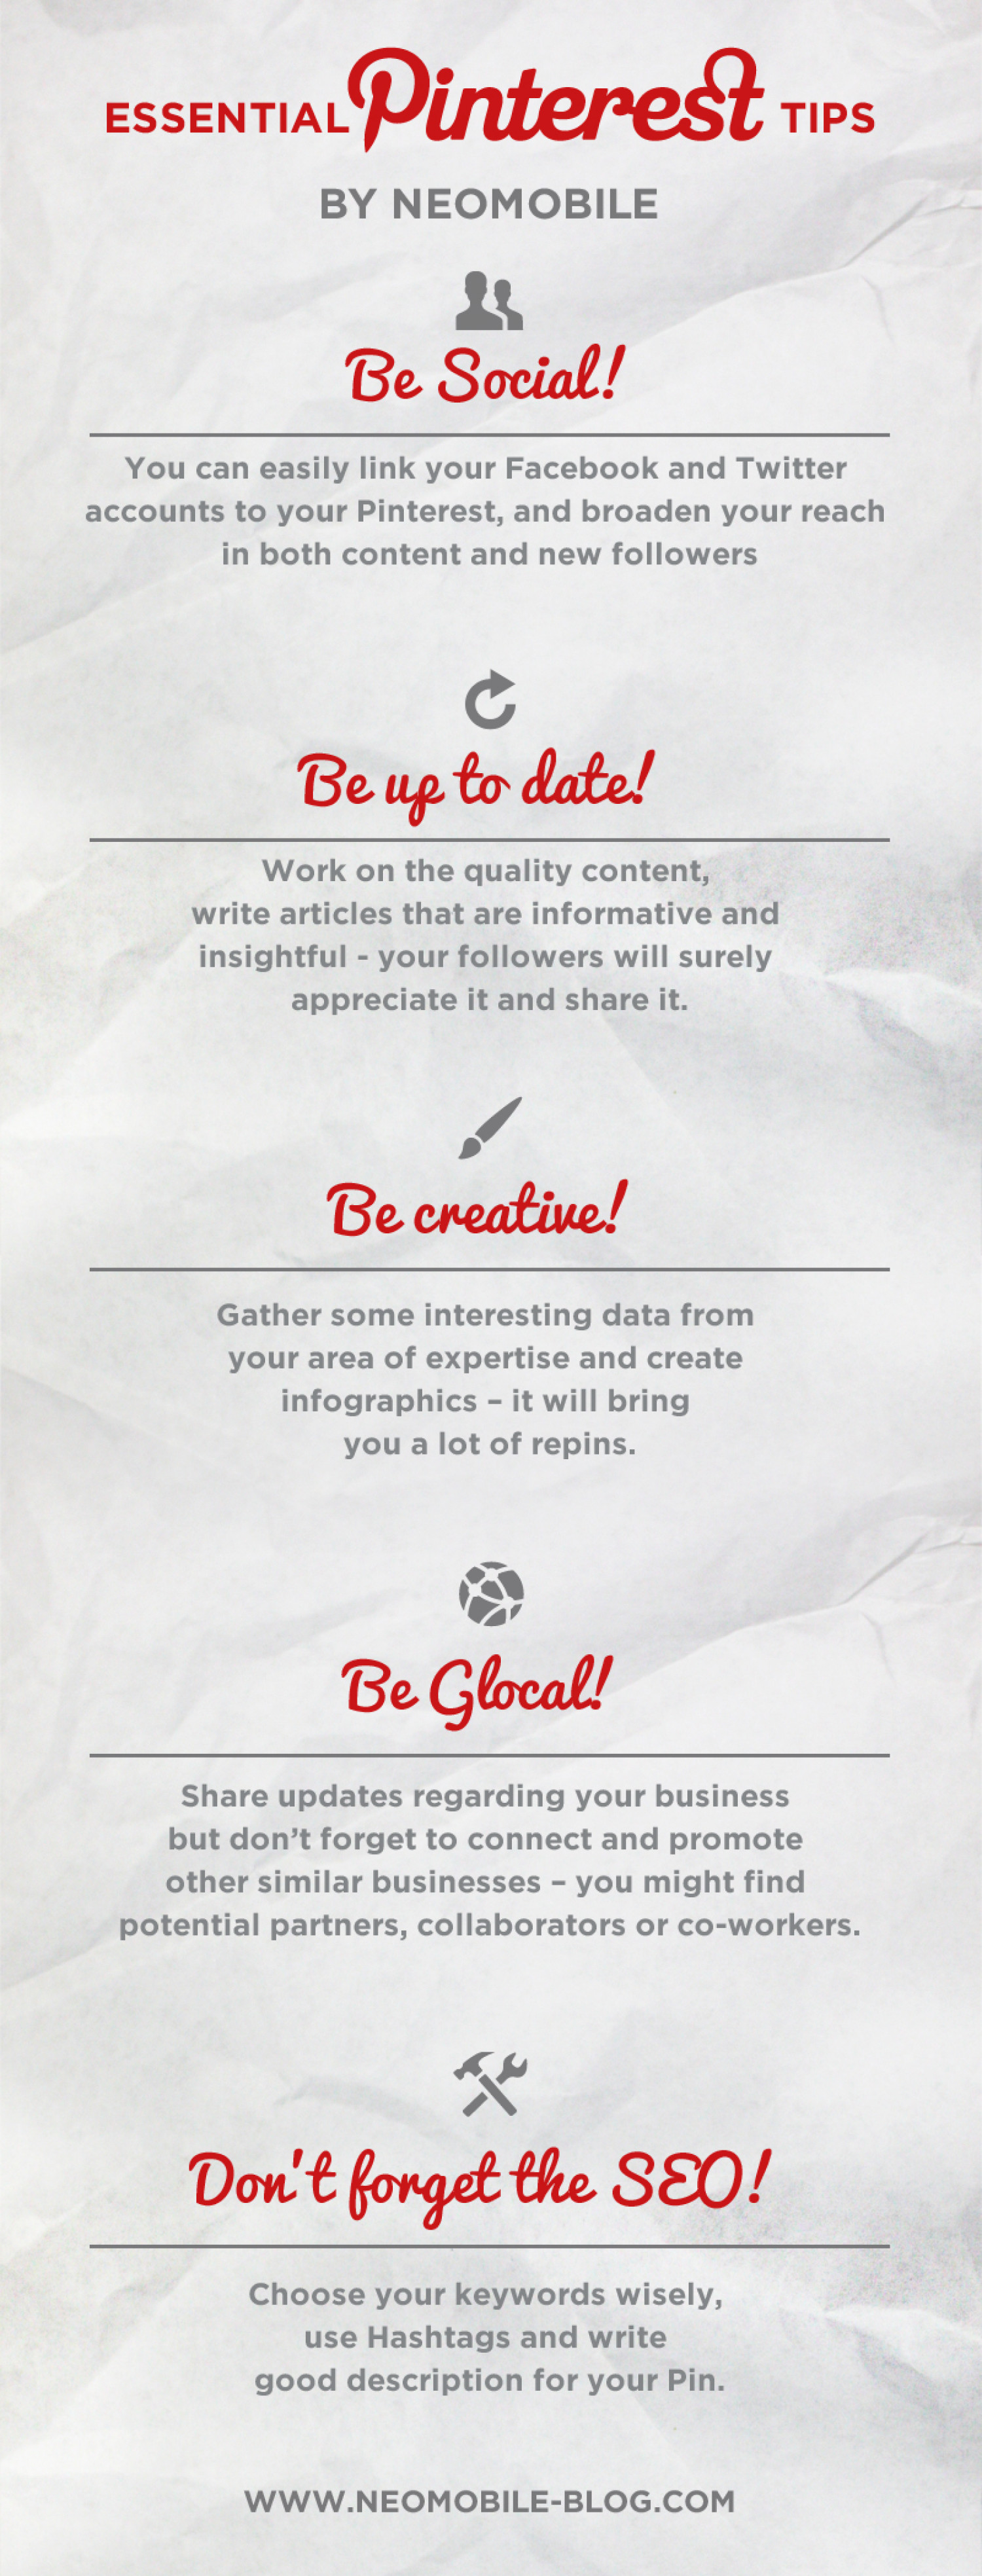 Essential Pinterest Tips Infographic